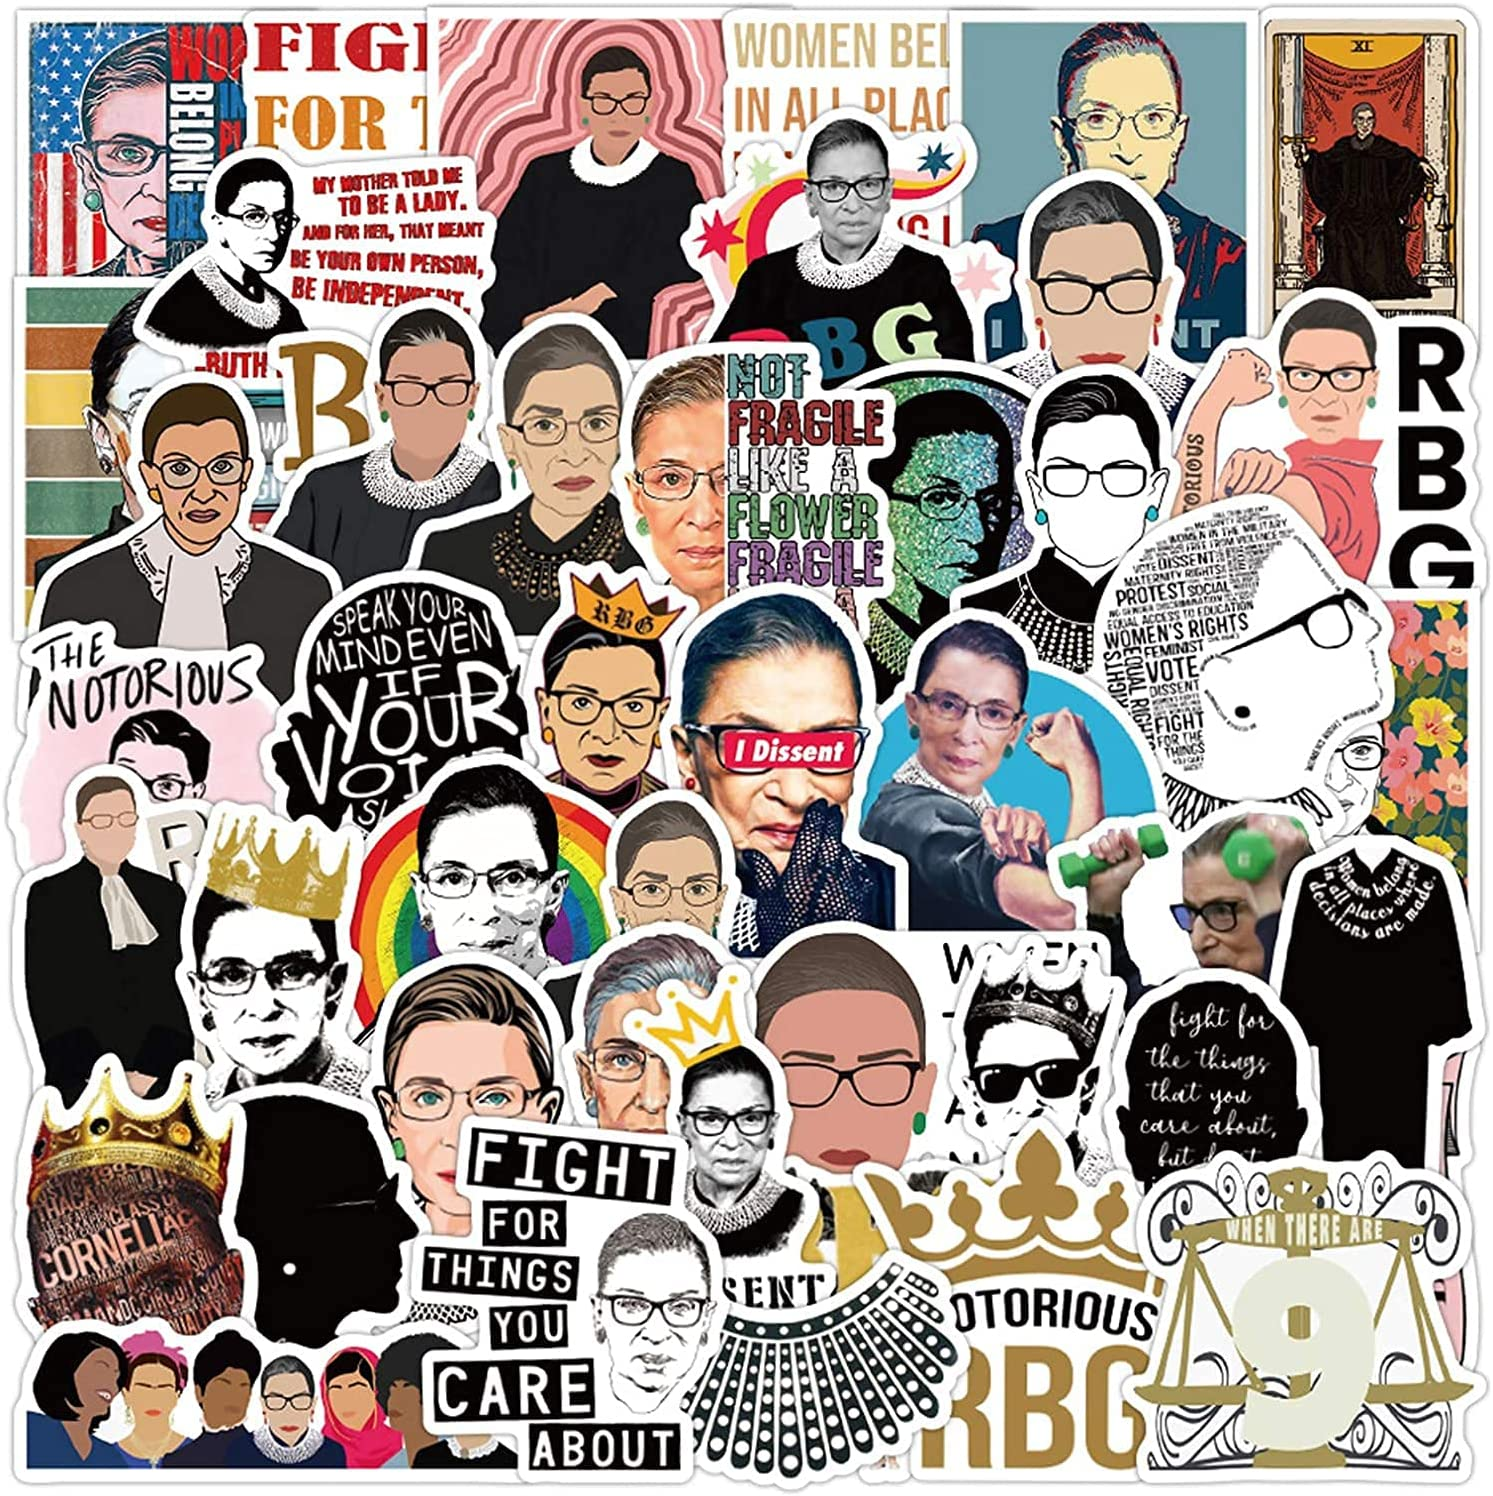 The Office Stickers - Ruth Bader Ginsburg (RBG) 100 pcs Computer Vinyl Stickers Waterproof, Friends Stickers for Laptop Skateboard Phone Water Bottle Luggage Decal Graffiti for Adults Teens Girls